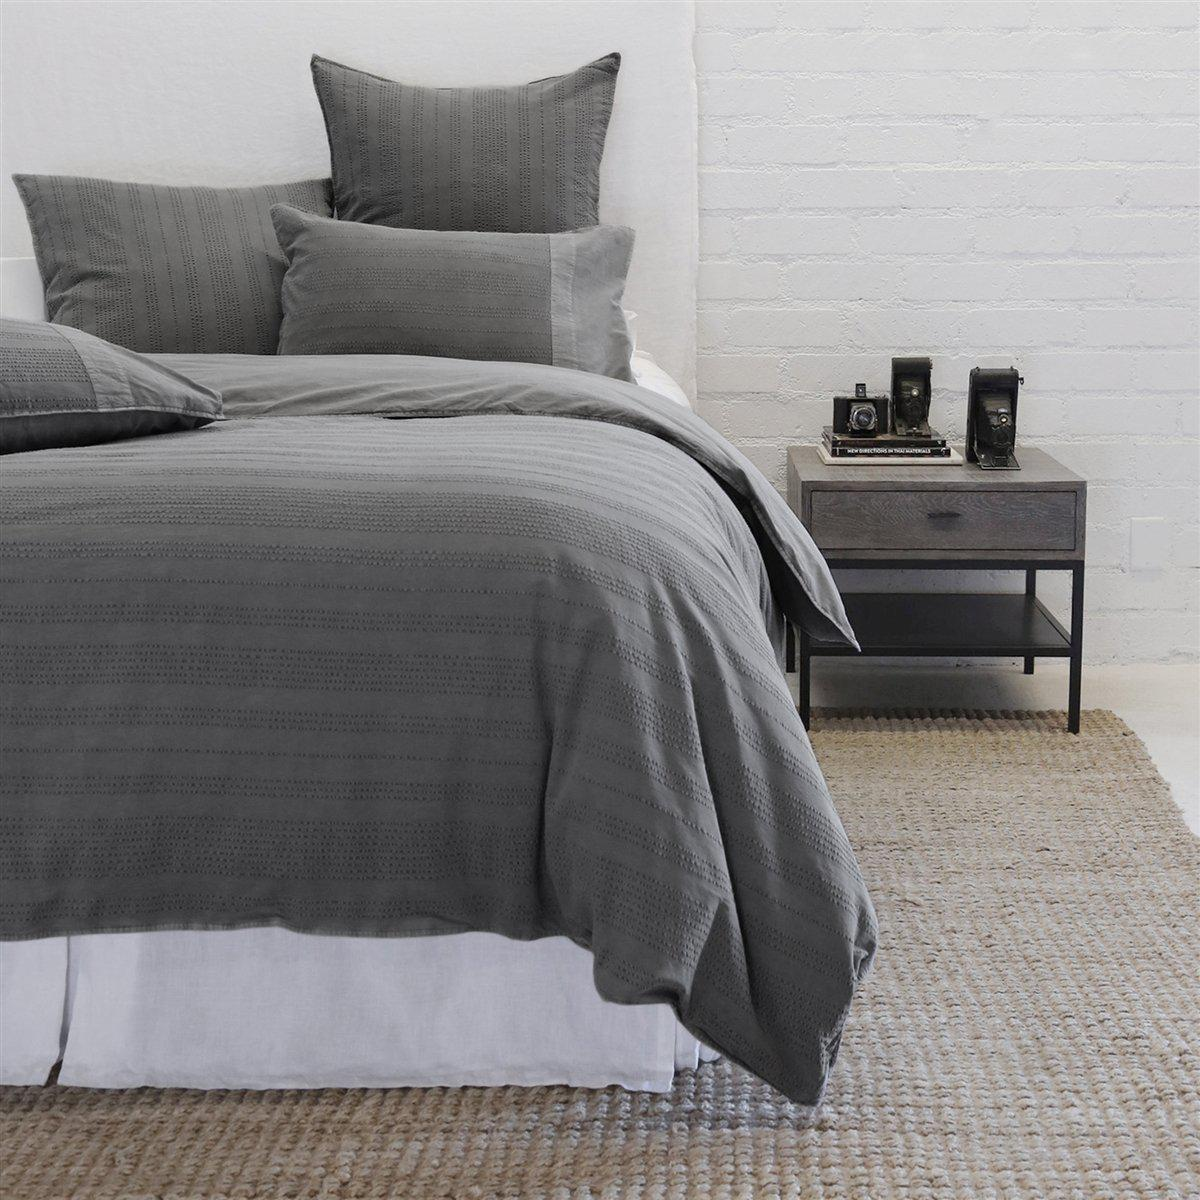 Quinn Sham by Pom Pom at Home-Bed & Bath-Standard-Grey-A Cottage in the City